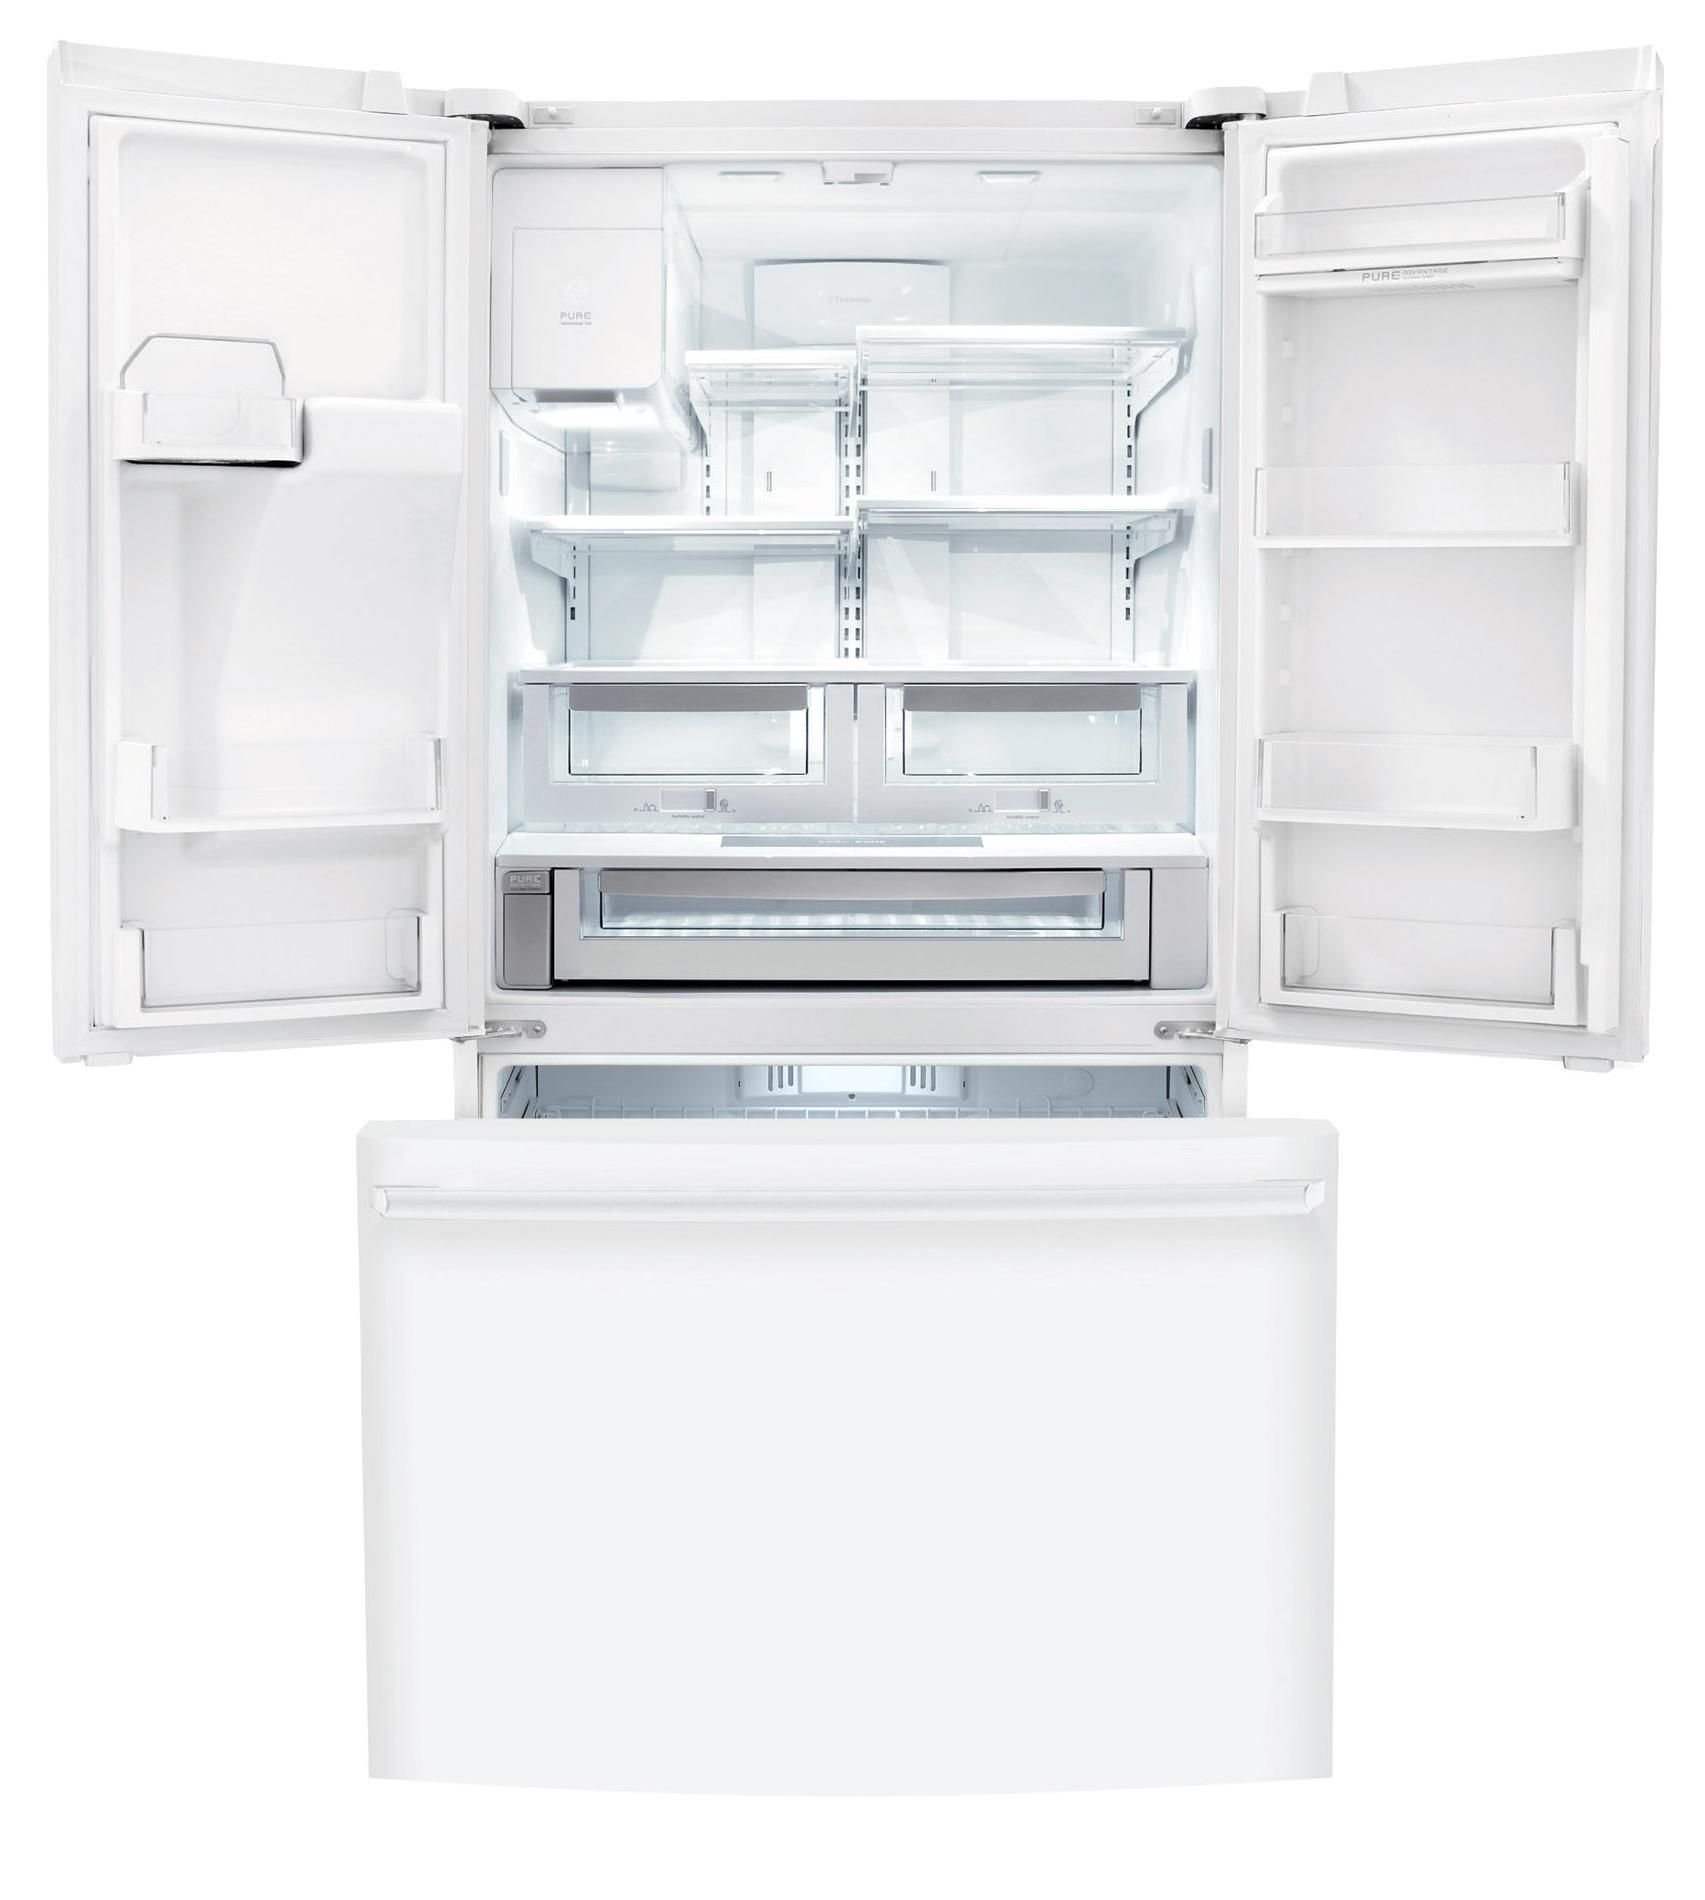 Electrolux 23 cu. ft. Counter-depth French Door Refrigerator with IQ-Touch™ Controls - White